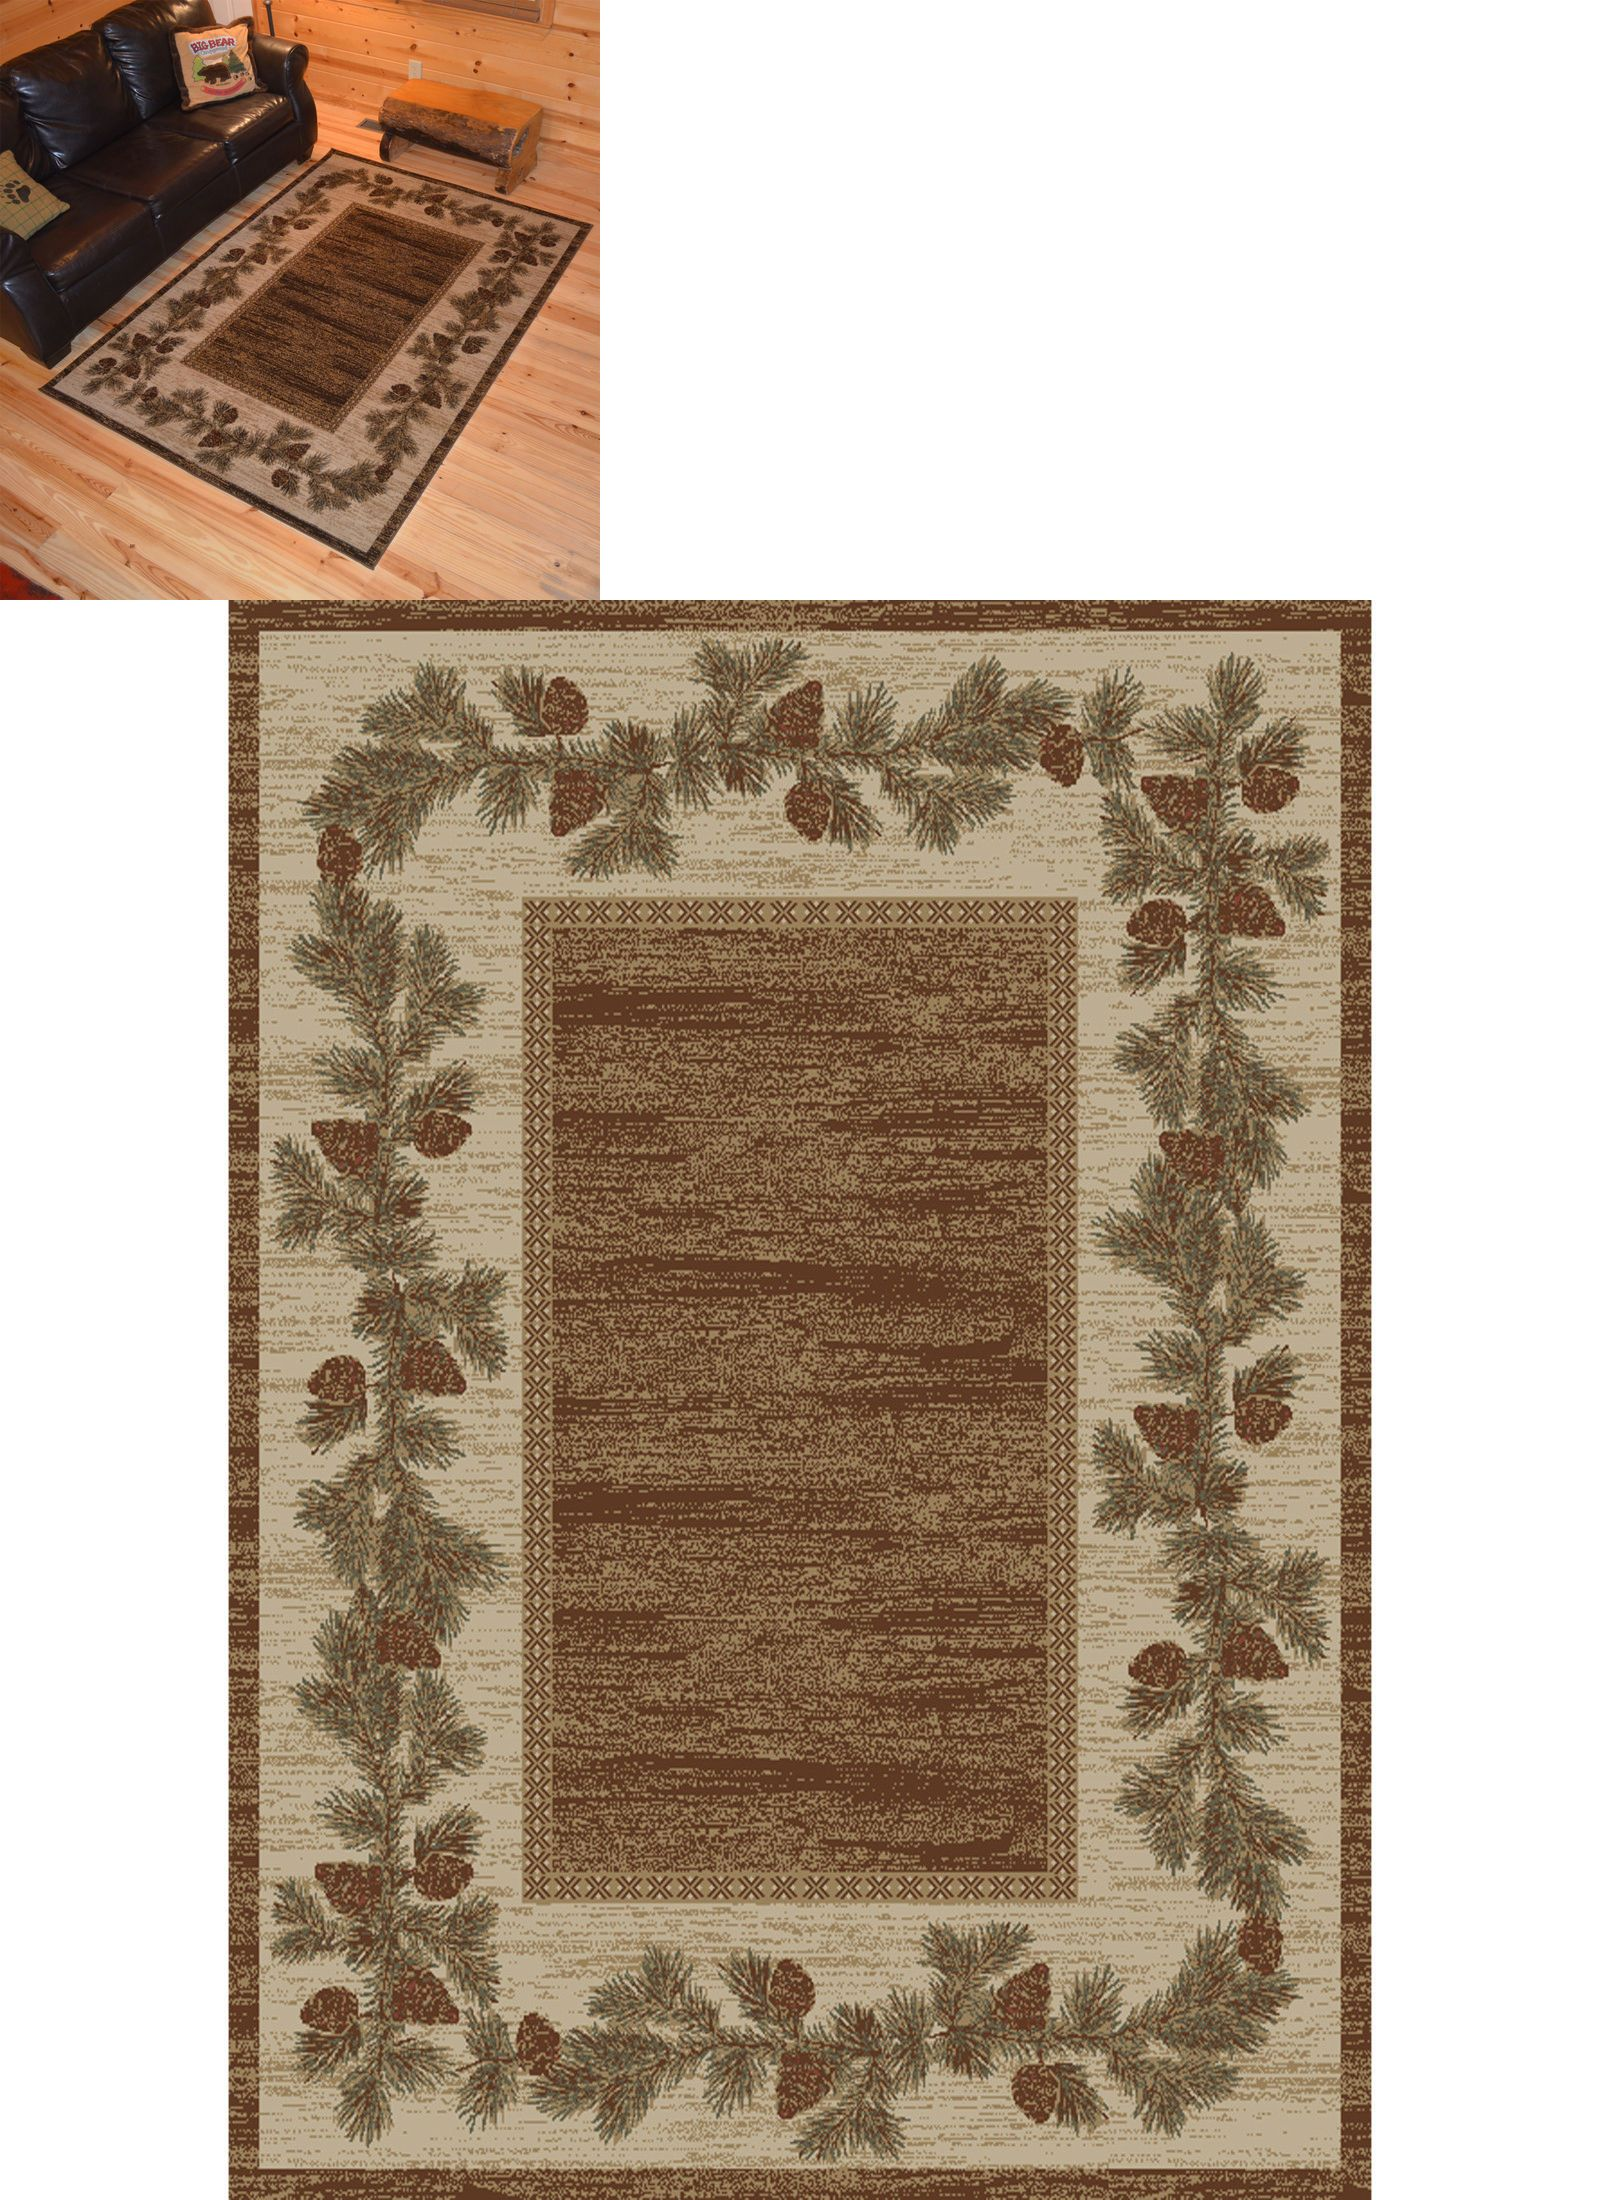 Area Rugs 45510 Lodge Cabin Rustic Pinecone Brown Rug Free Shipping It Now Only 215 On Ebay